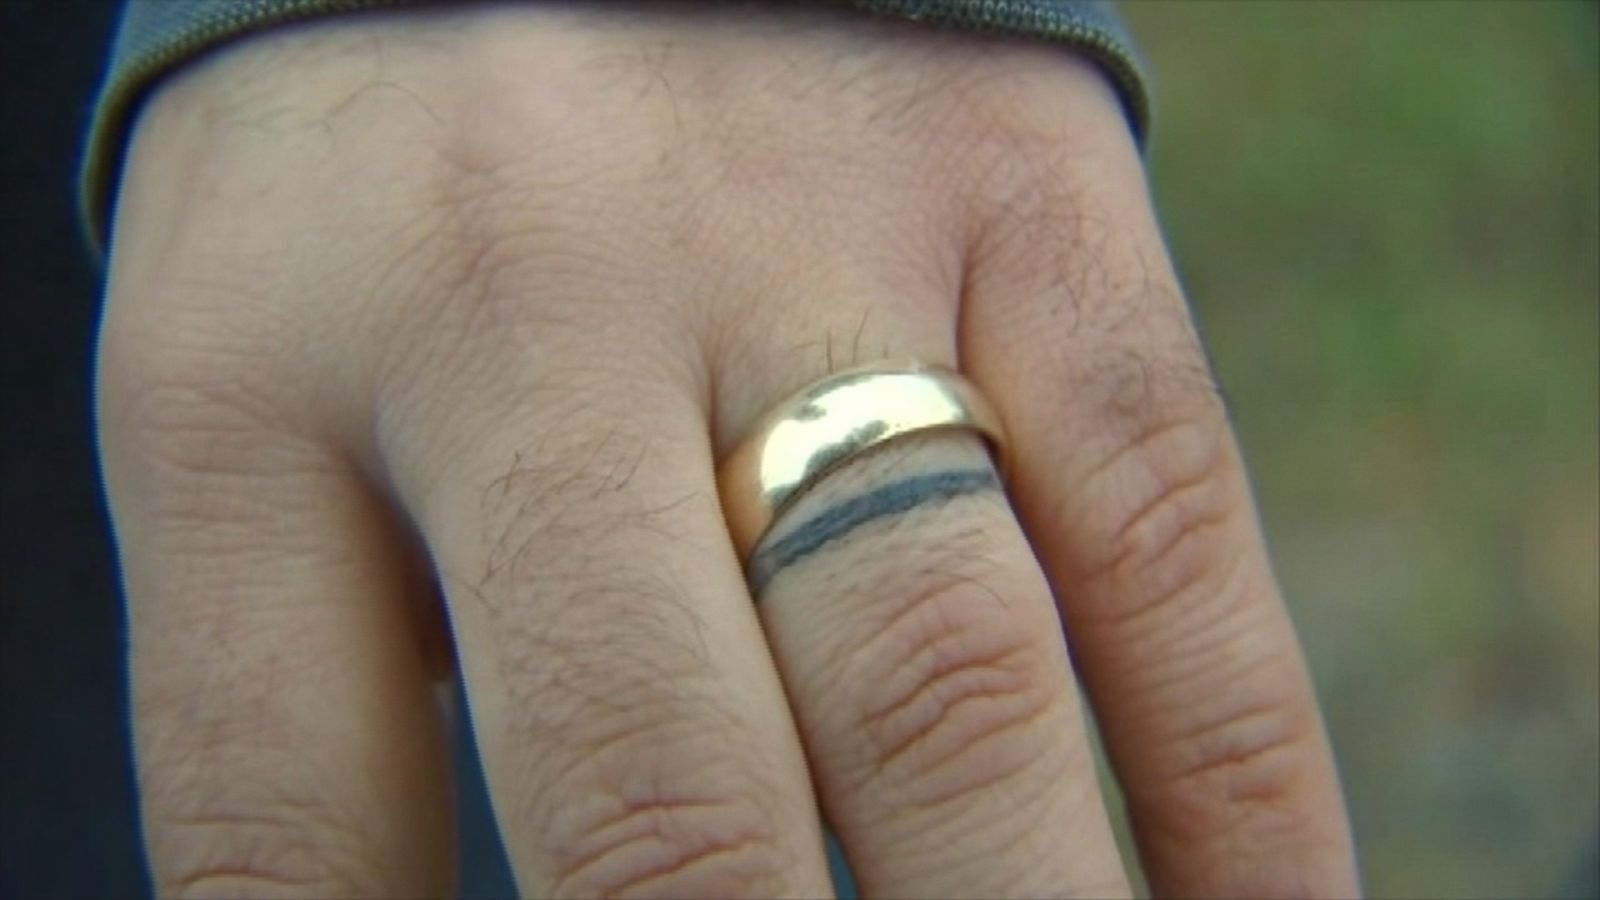 After losing his wedding band two months ago in a rushing river during an end-of-summer work outing, Matt Dooyema never thought he'd see his sentimental gold band again.